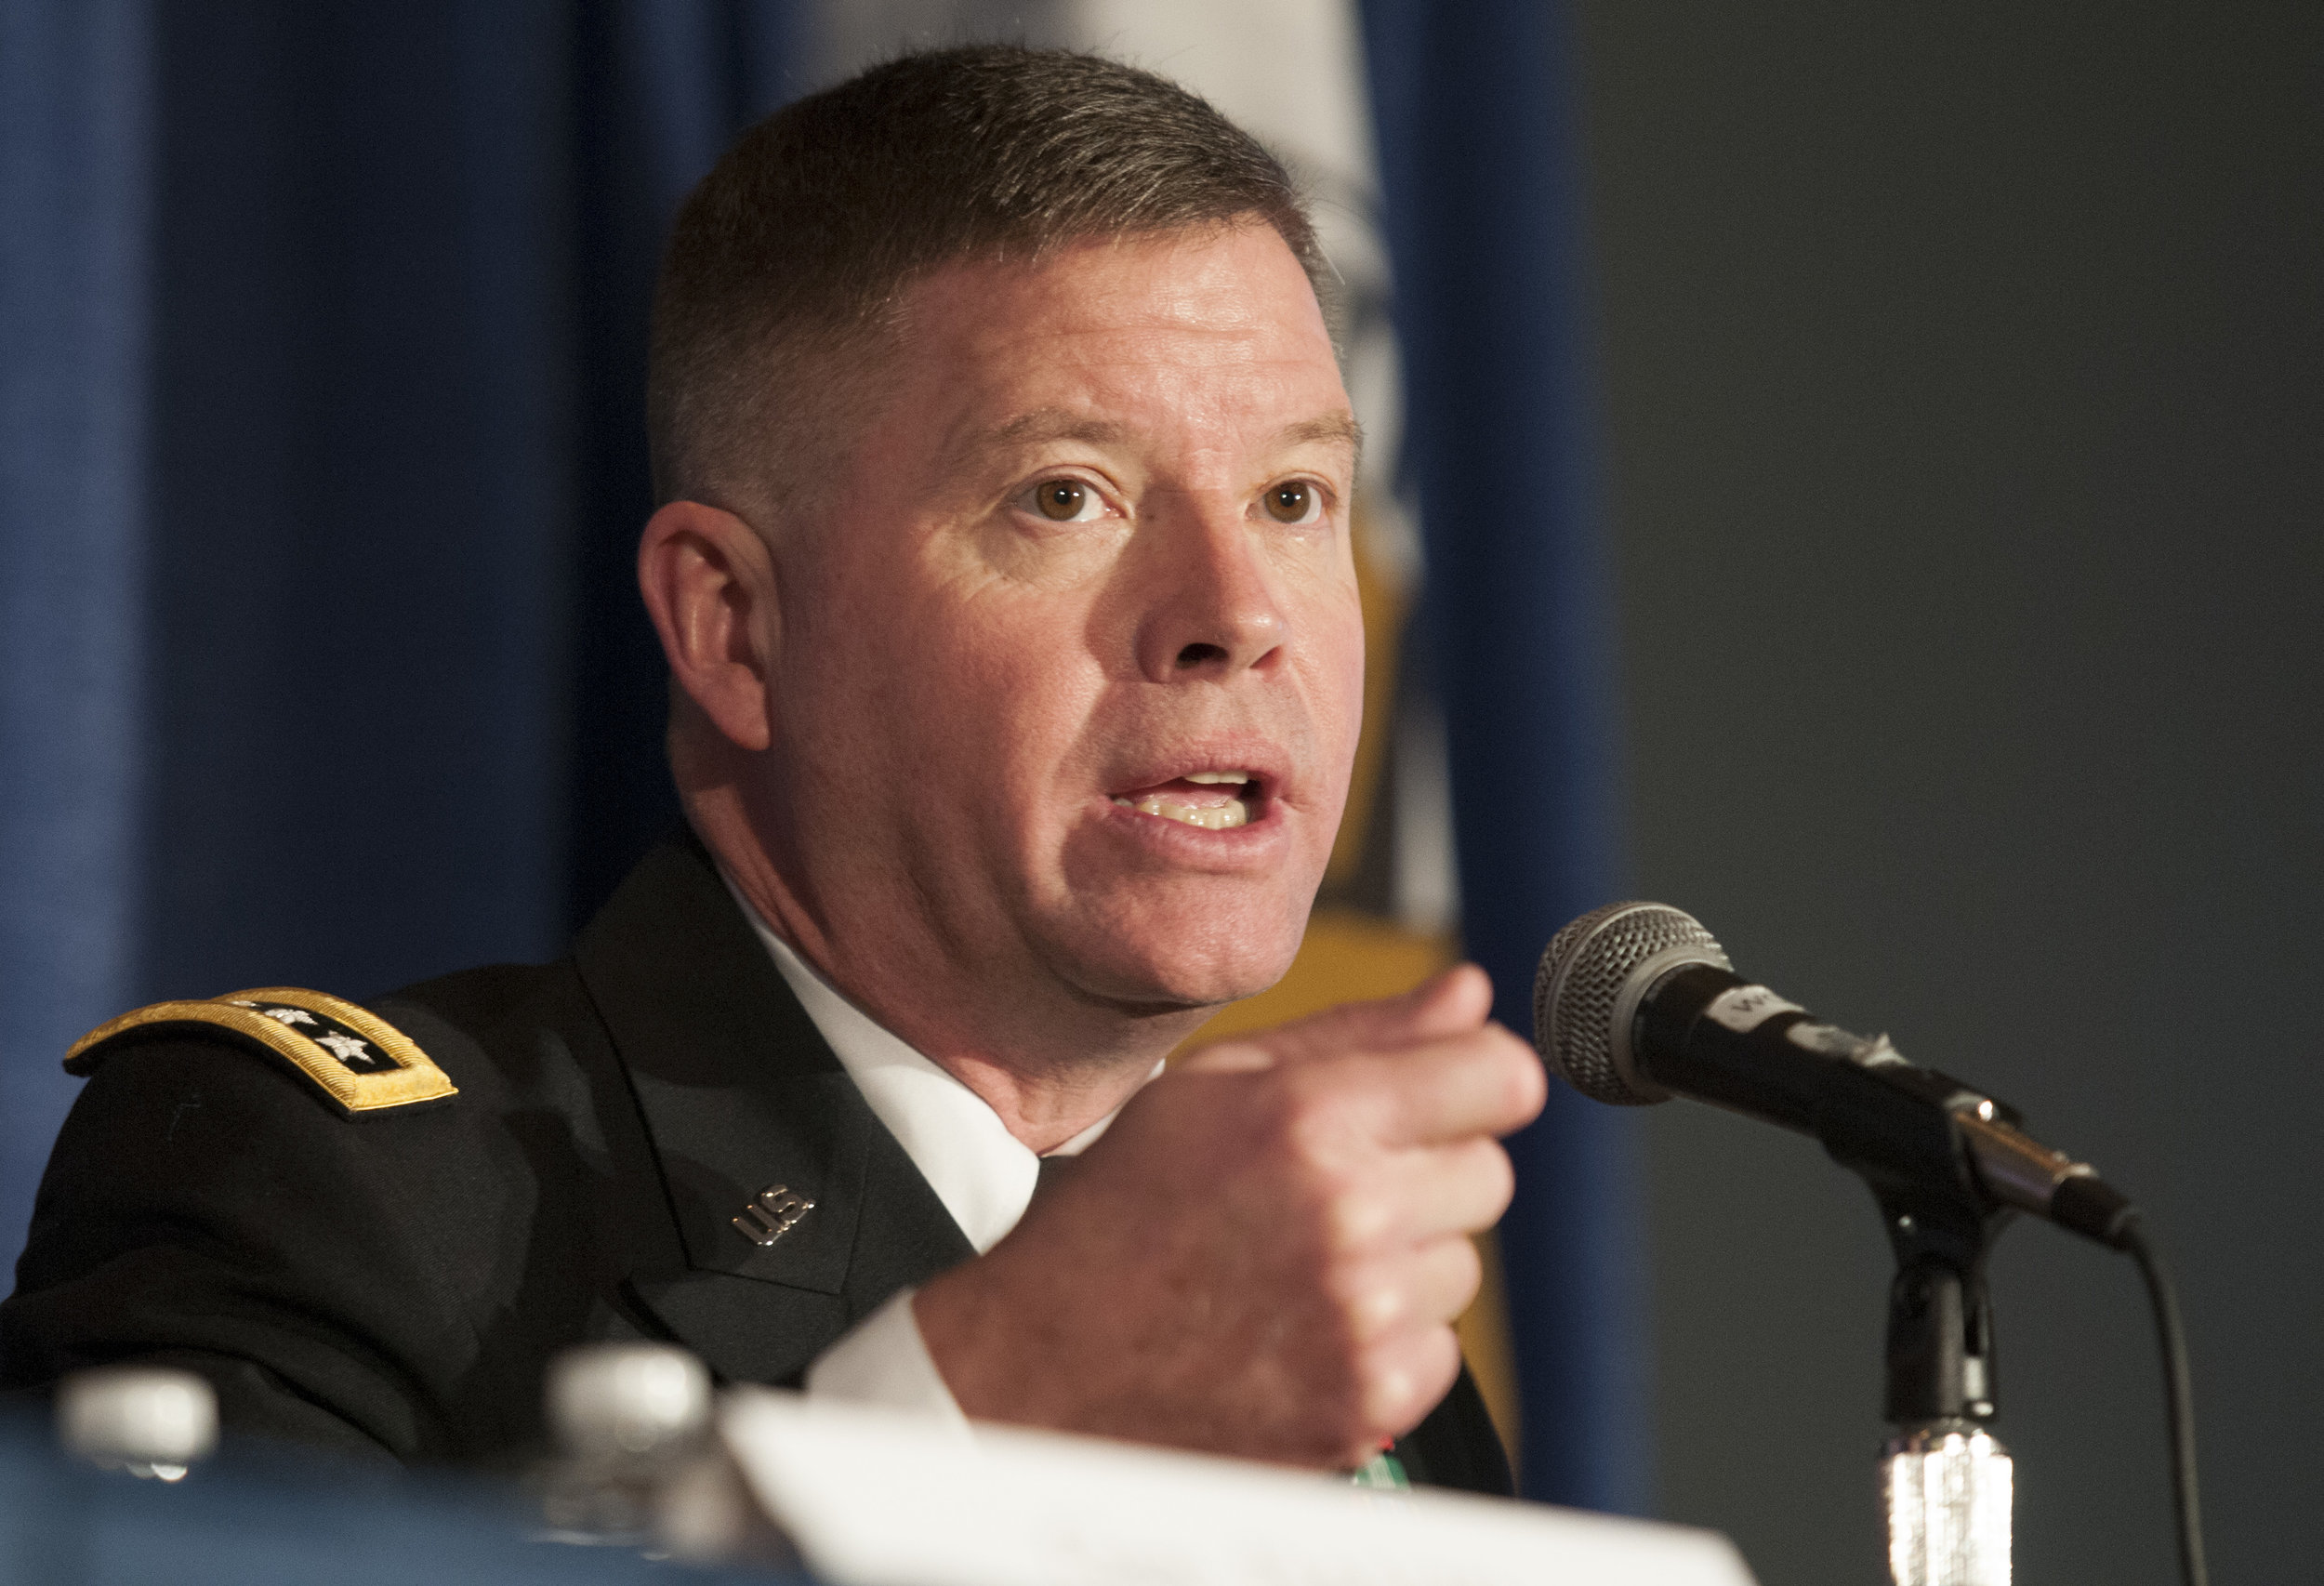 Gen. David Perkins, commander of the U.S. Army Training and Doctrine Command, talks about the multi-domain battle concept at the Association of the U.S. Army's annual meeting in Washington, D.C., Oct. 4, 2016.(U.S. Army Photo/Sean Kimmons)